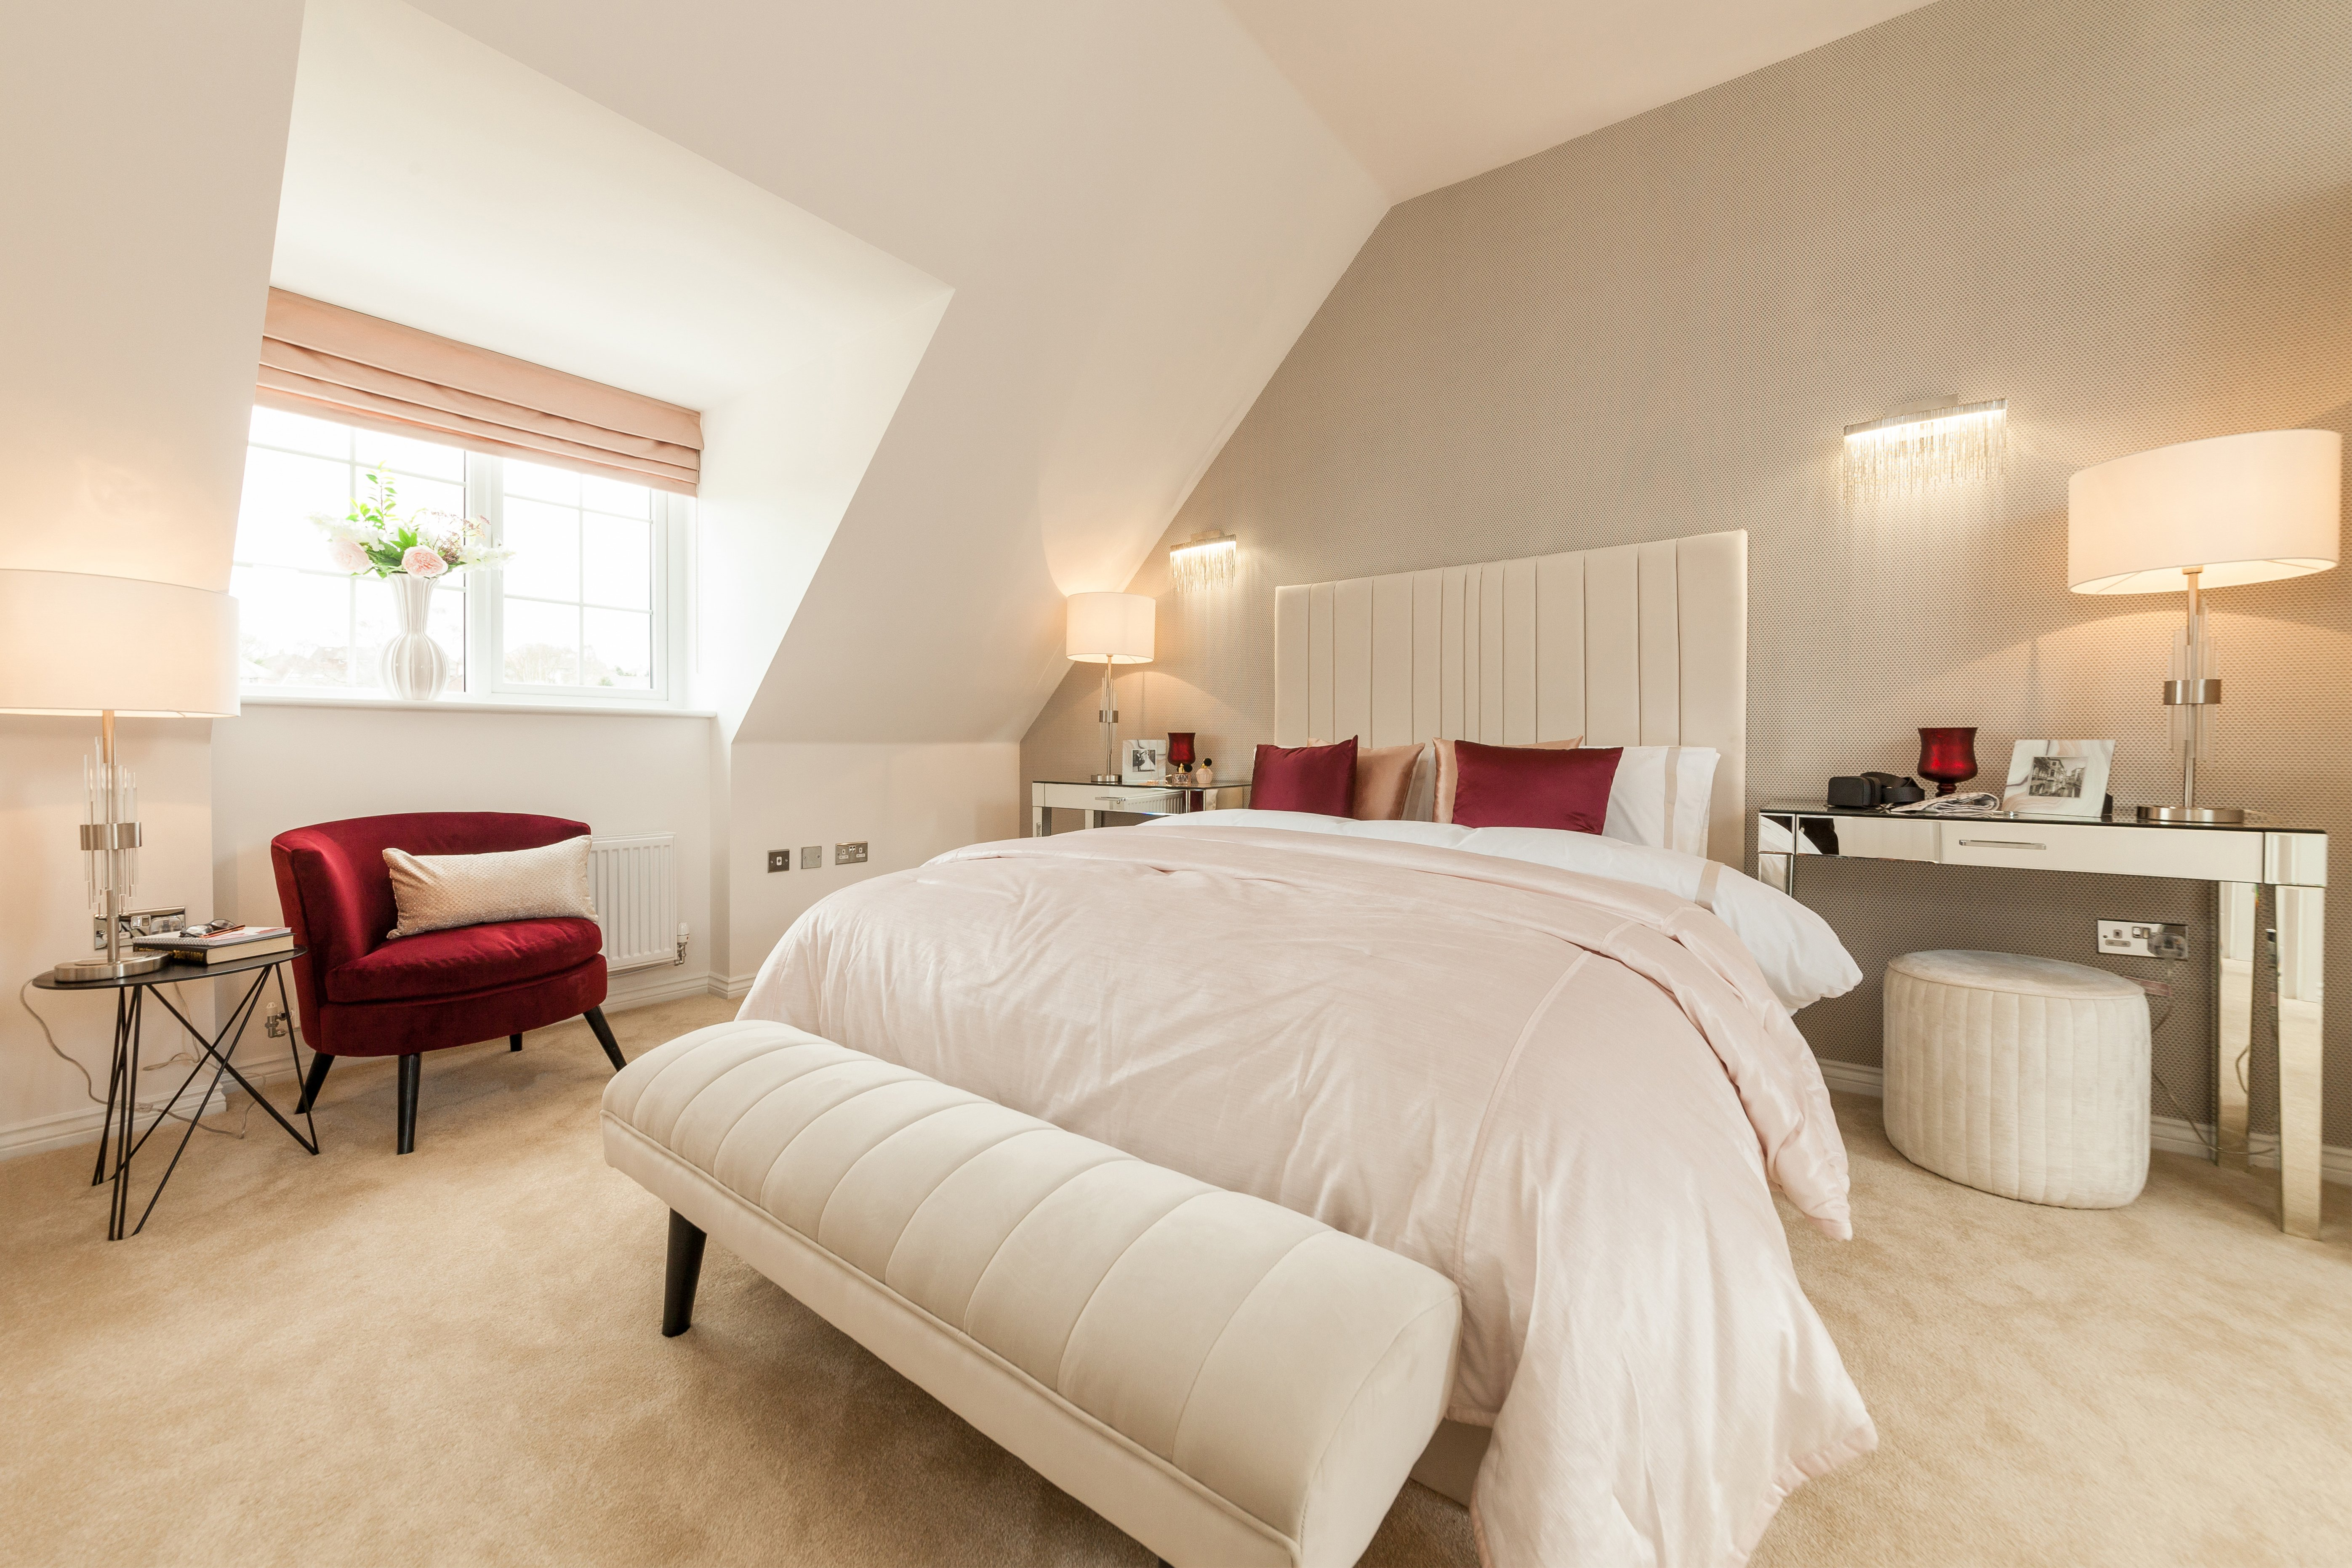 AltonG_Bedroom 1 2